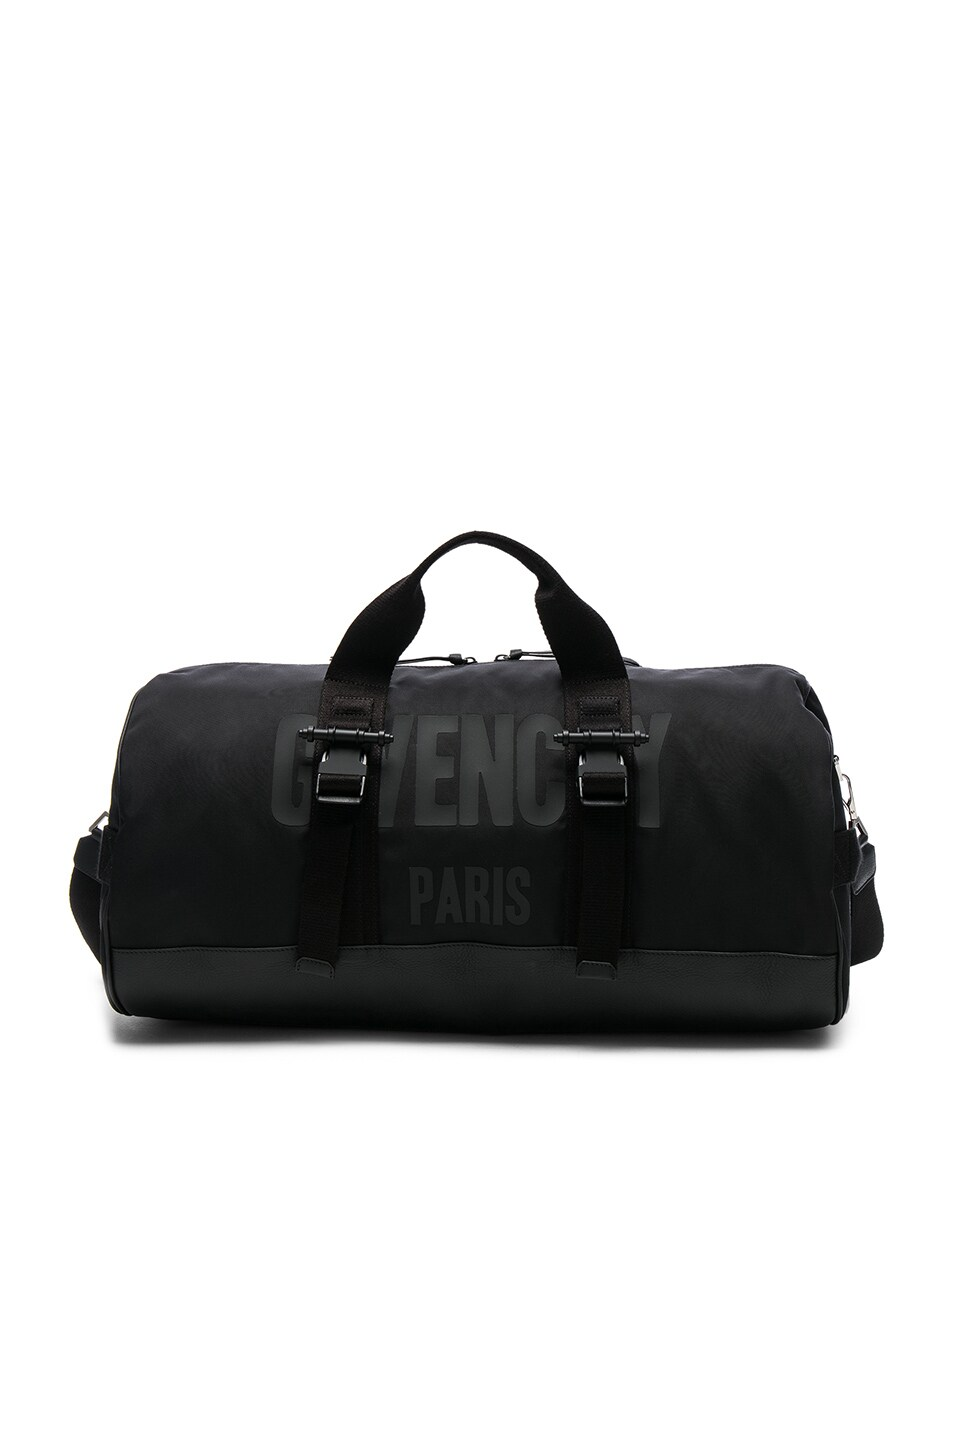 120d093e86 Image 1 of Givenchy Obsedia Techno Duffel Bag in Black